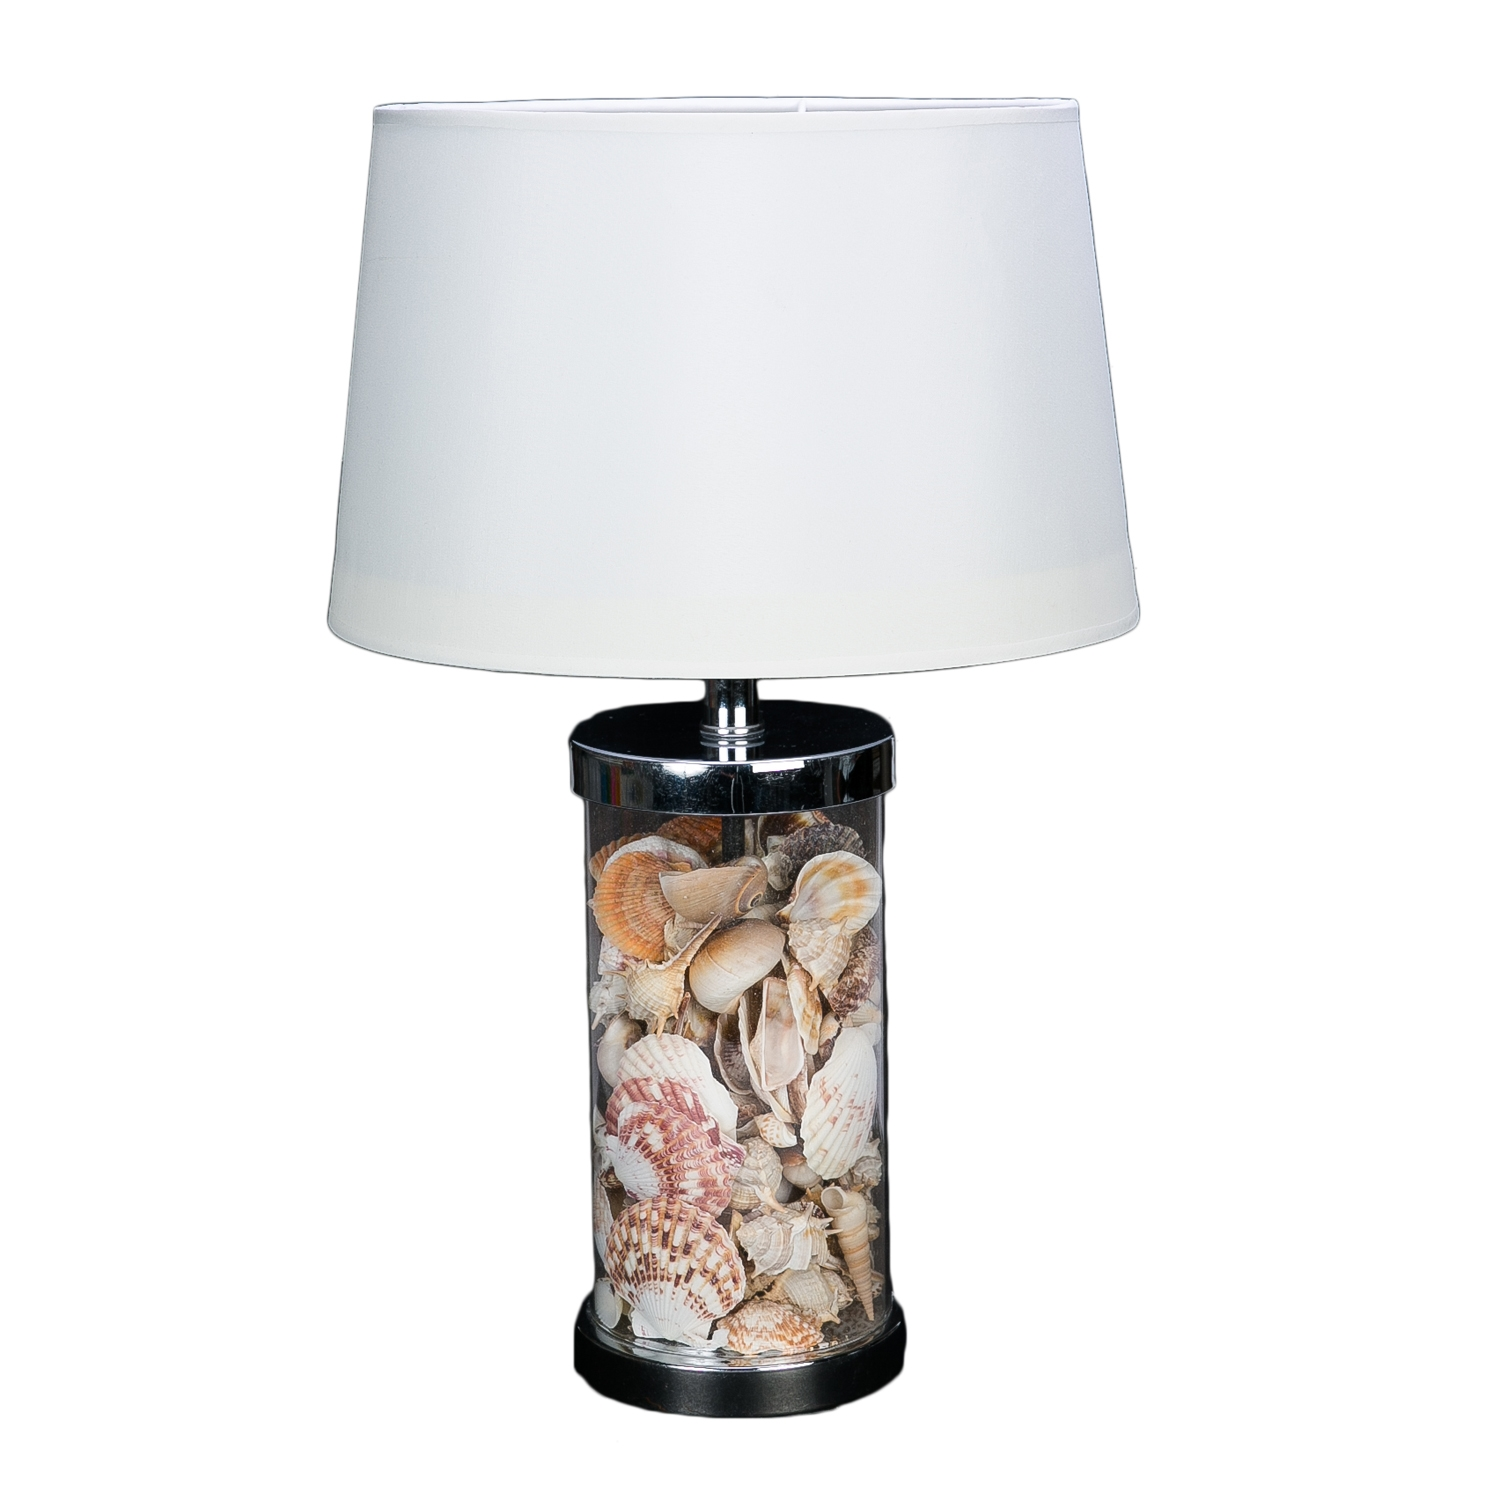 LampBeachcombers Coastal Table Life Shell Filled Round Ygy6vbf7